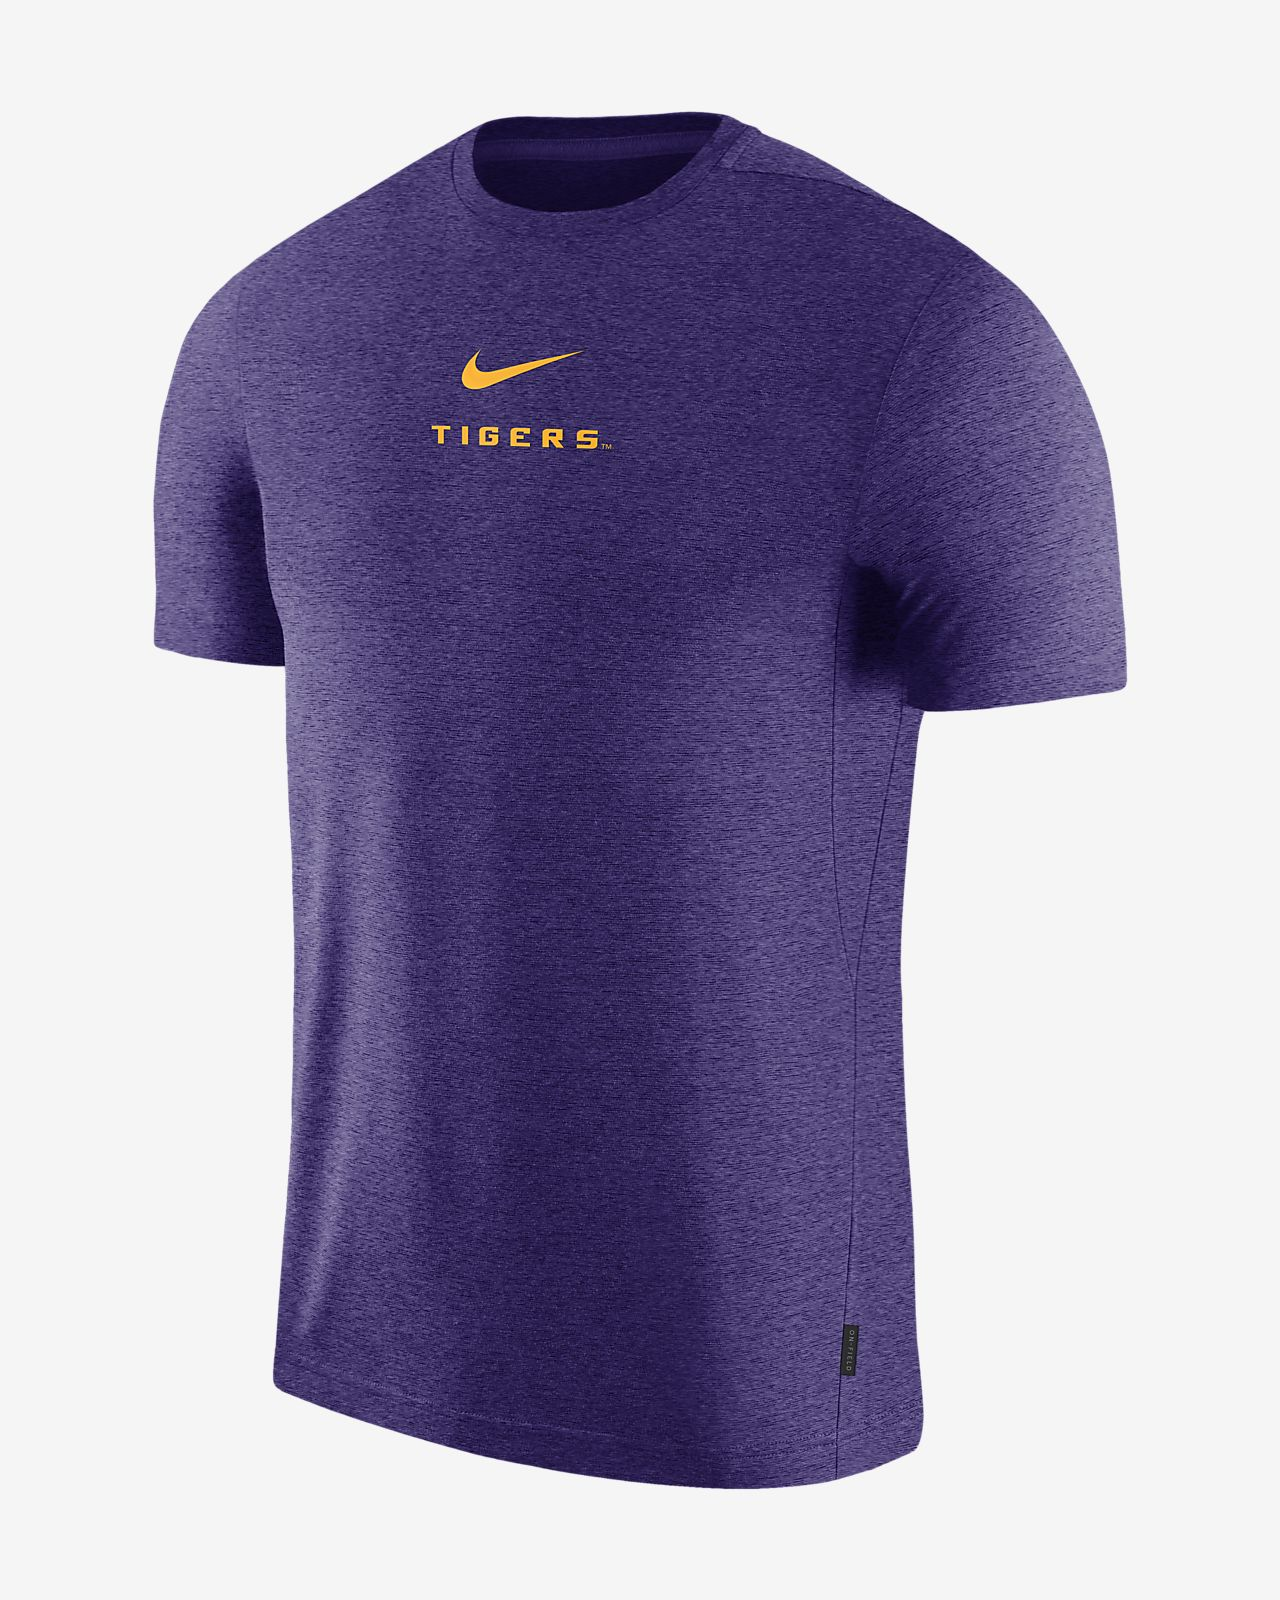 b7242aab1c Nike College Dri-FIT Coach (LSU) Men's Short-Sleeve Top. Nike.com